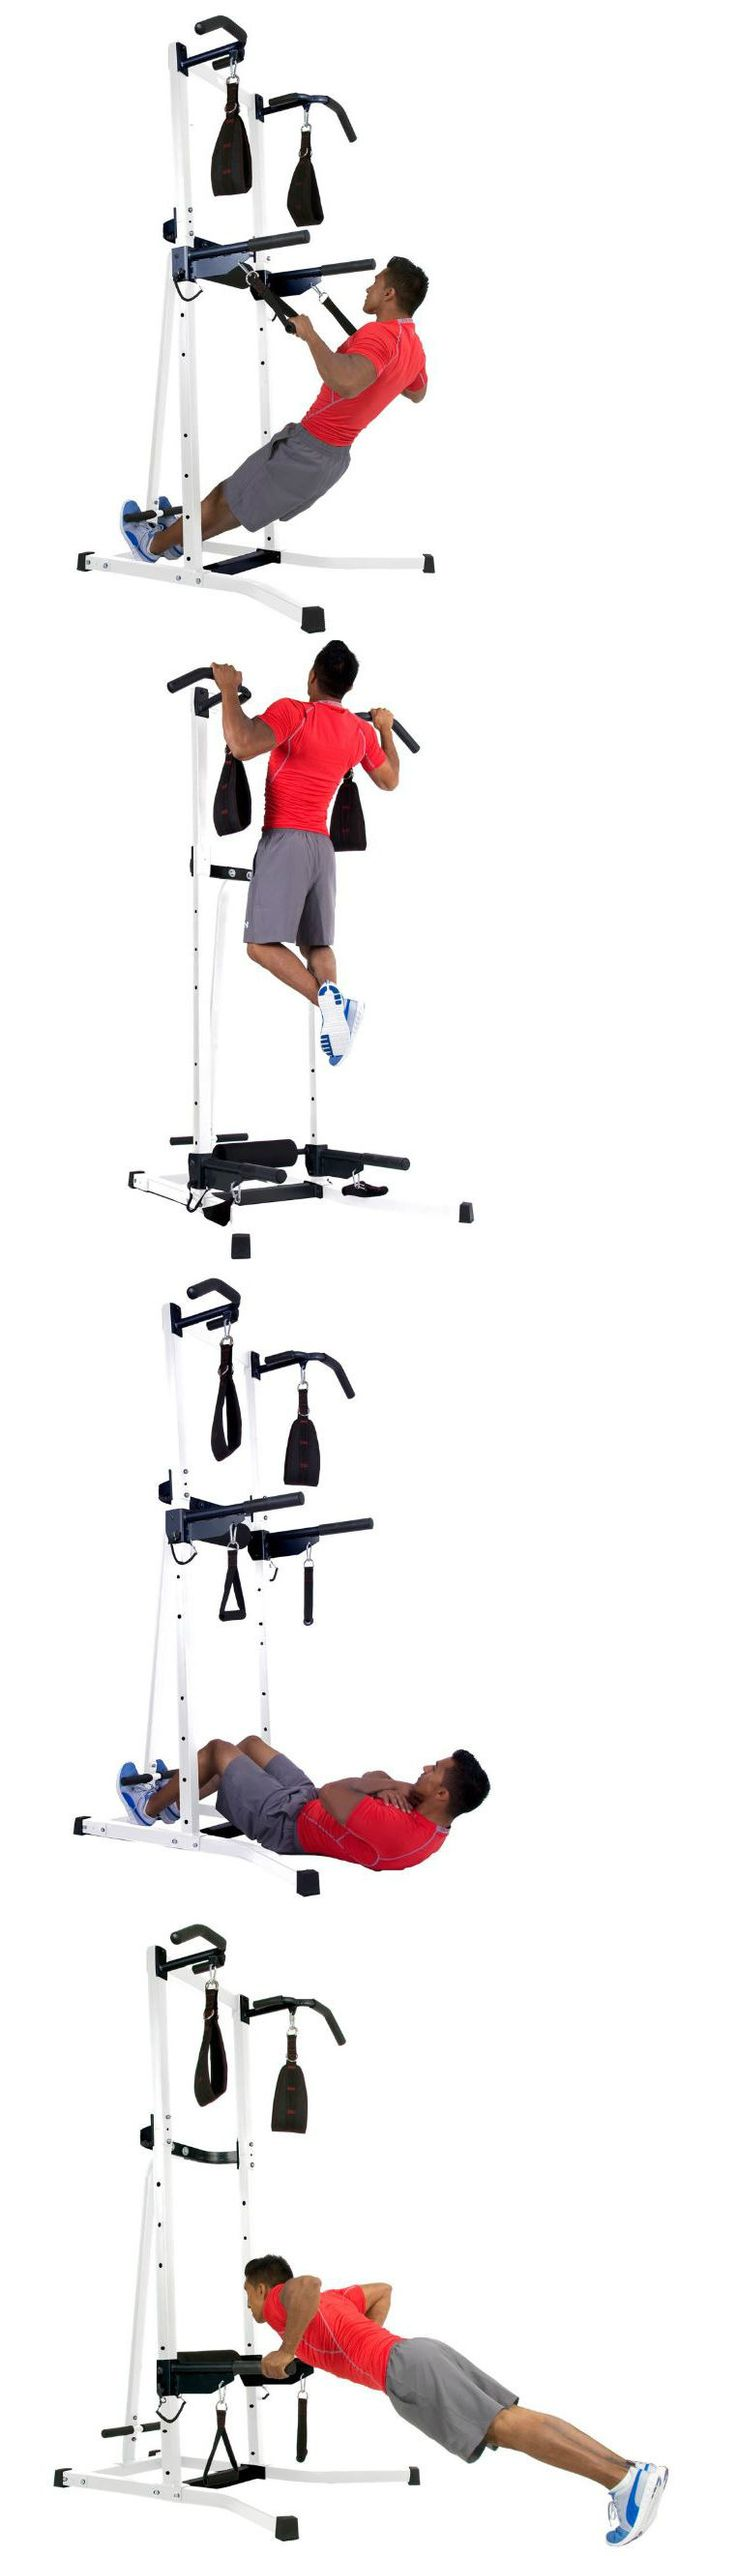 Home Gyms 158923: Power Tower Exercise Station Home Gym Pull Up Bar Dip Chin Sit Fitness Machine BUY IT NOW ONLY: $249.75